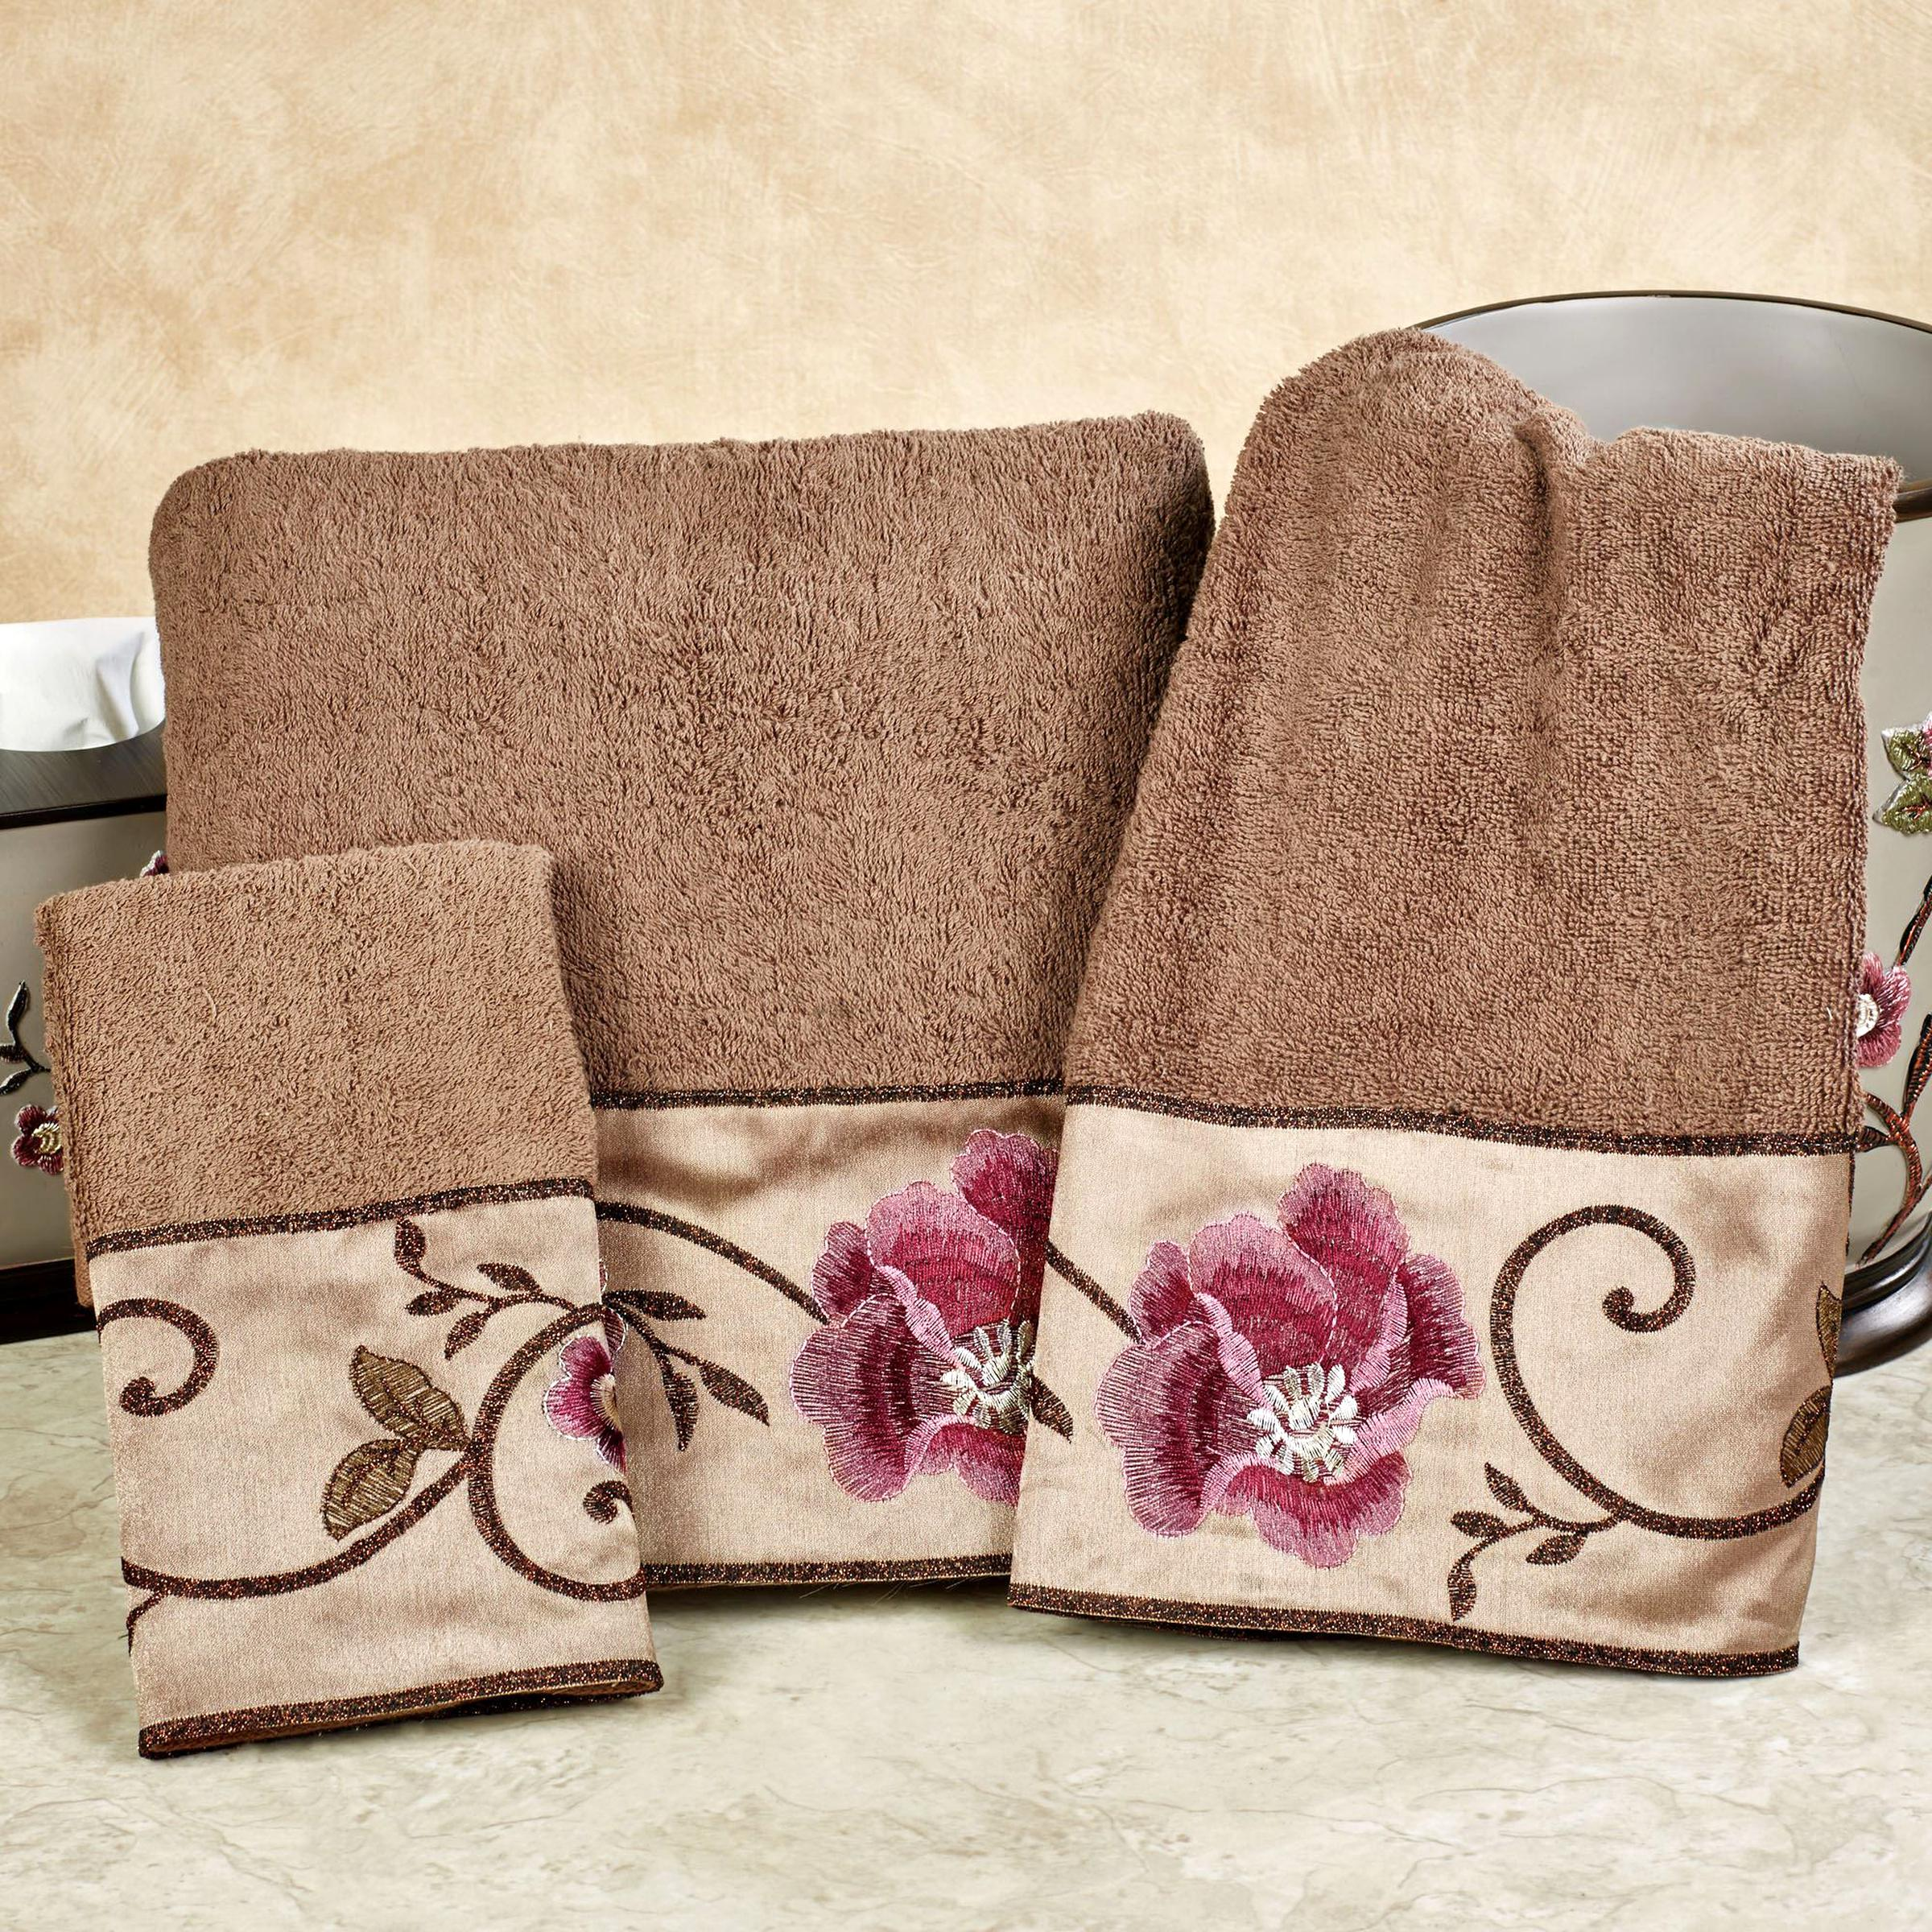 Bath Towel Set Floral for sale | Only 2 left at -75%